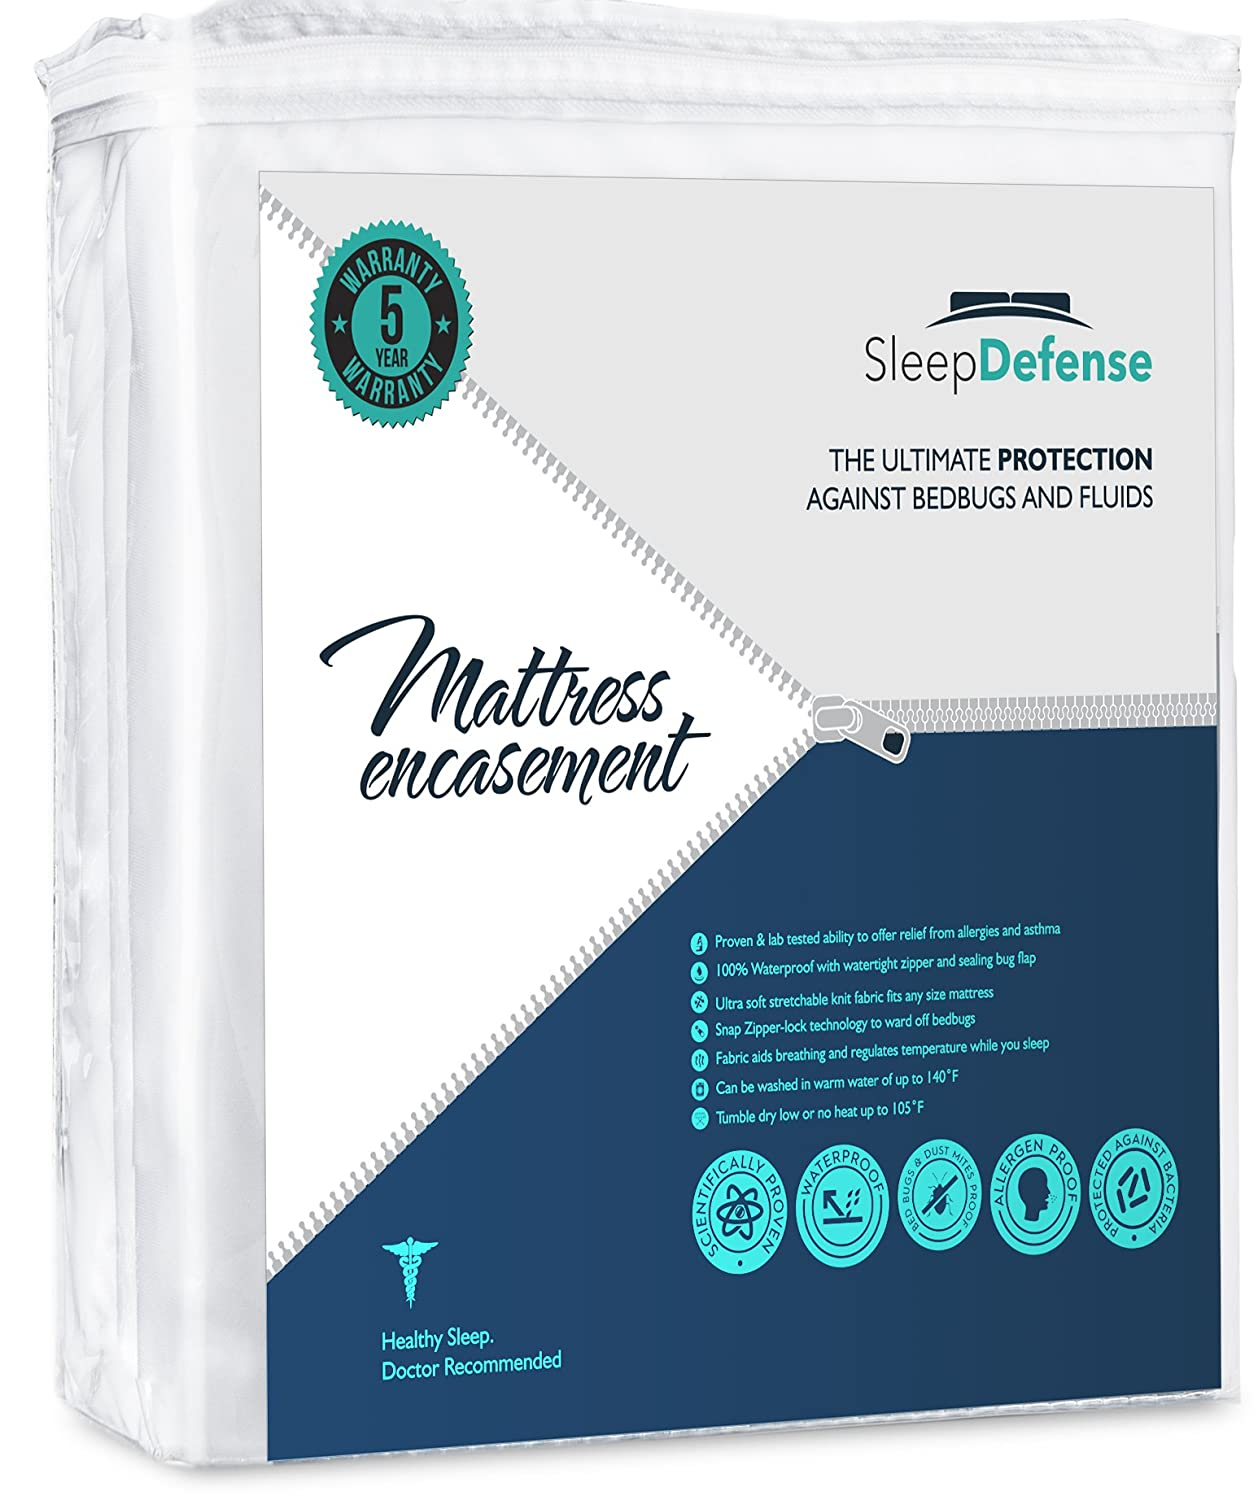 The 7 Best Mattress Encasements – Bed Bug Proof your Mattress 5